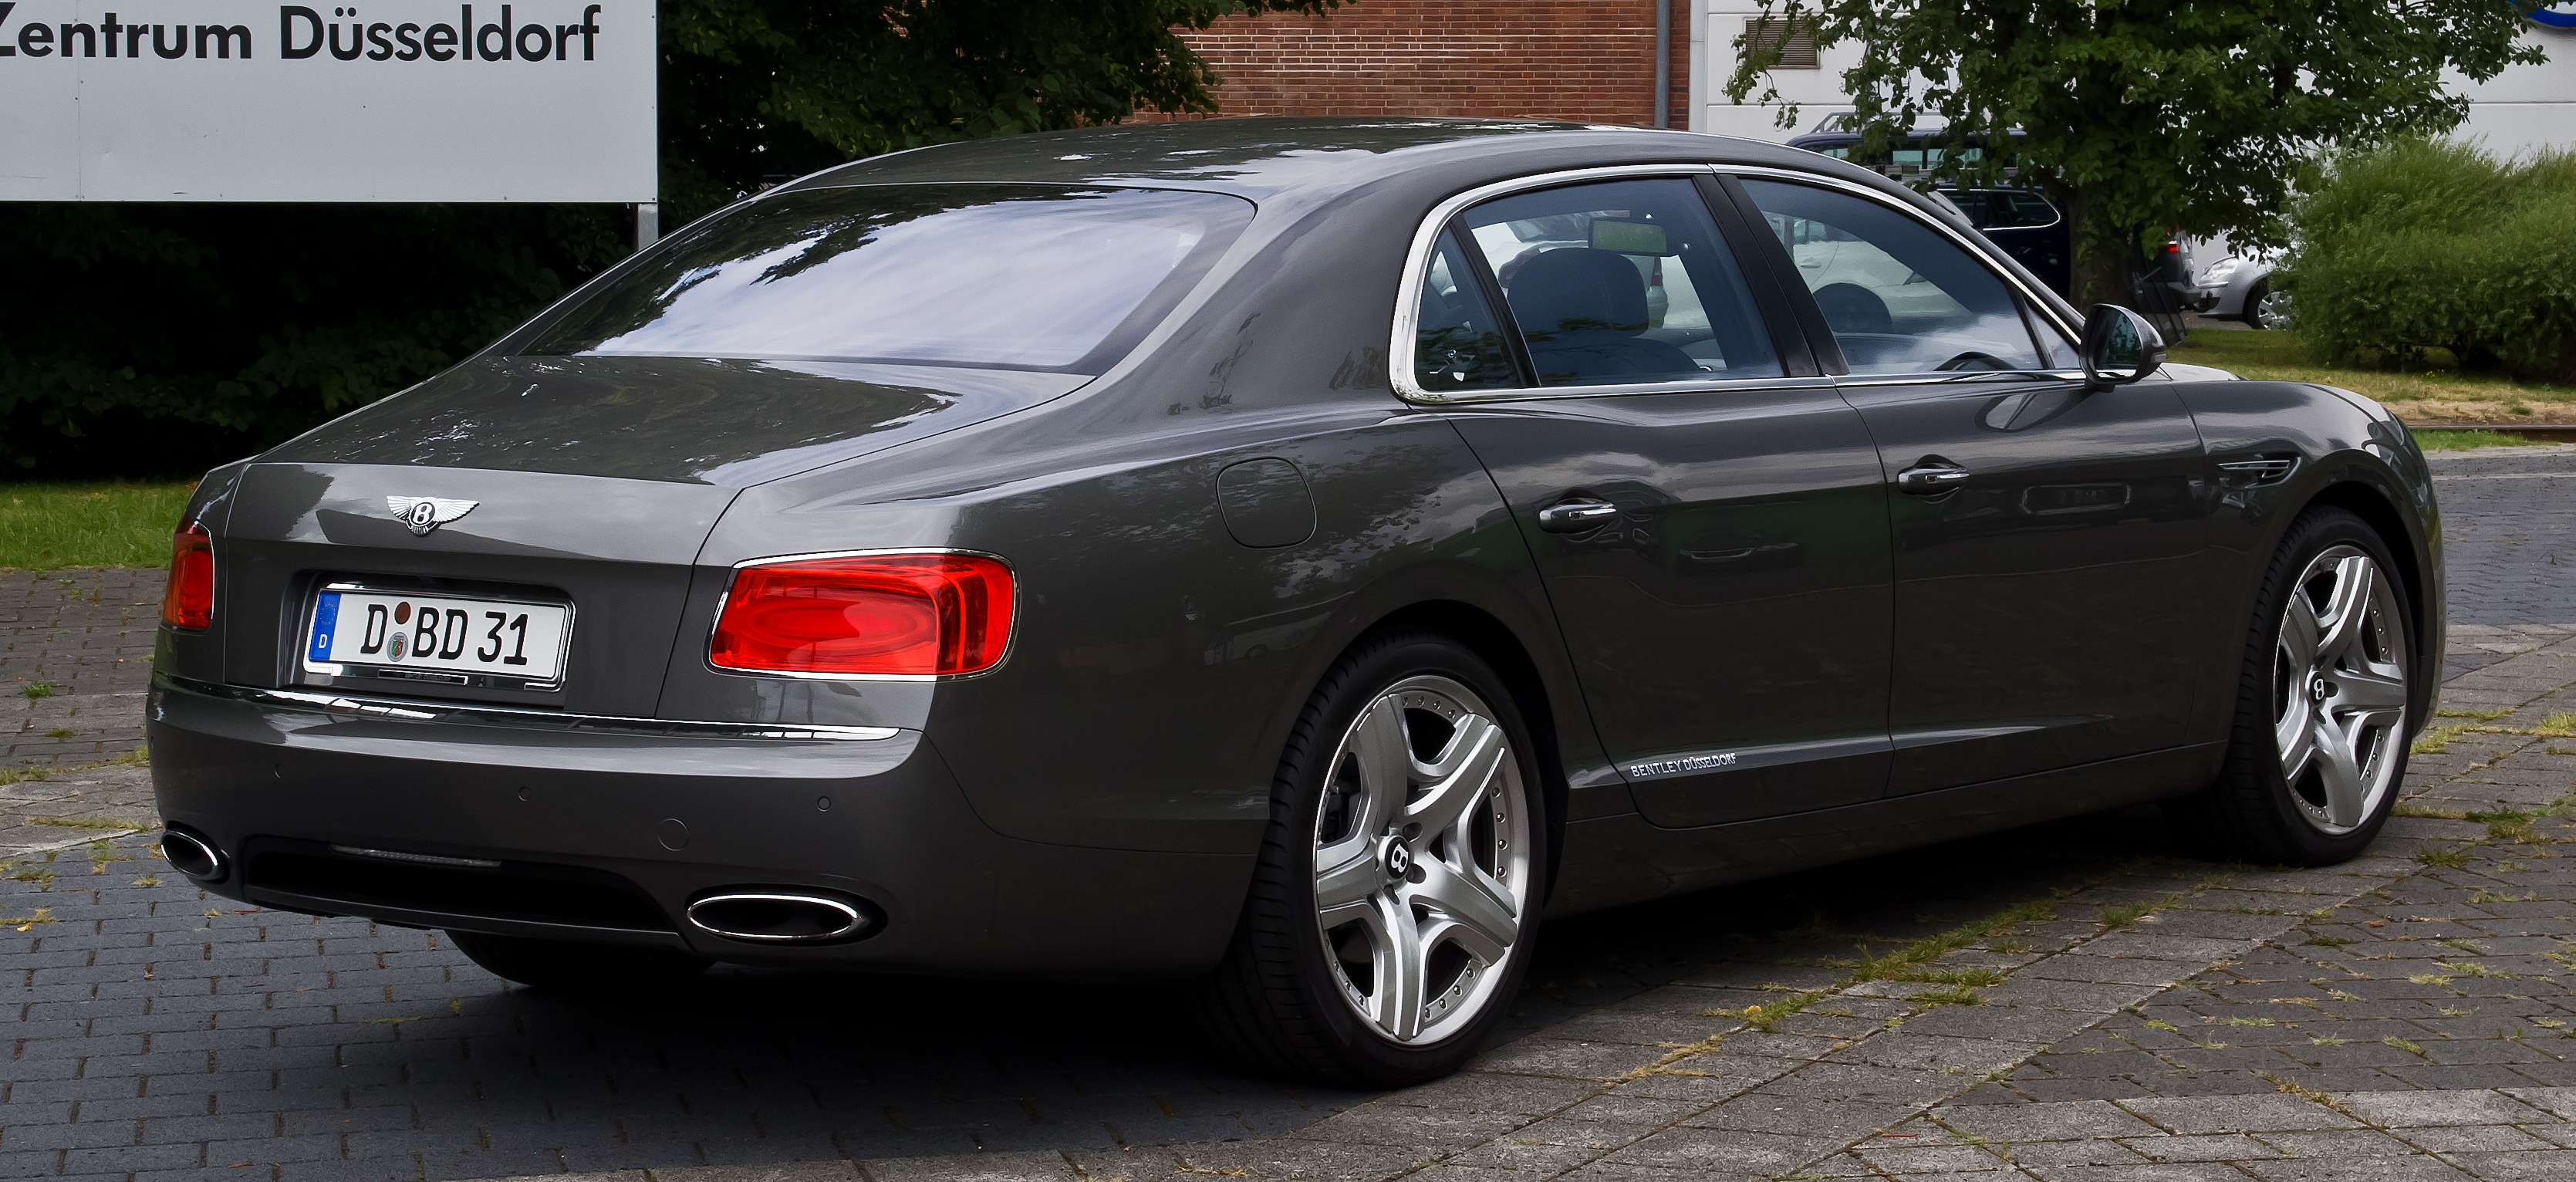 File:Bentley Flying Spur – Heckansicht, 12. August 2013 ...